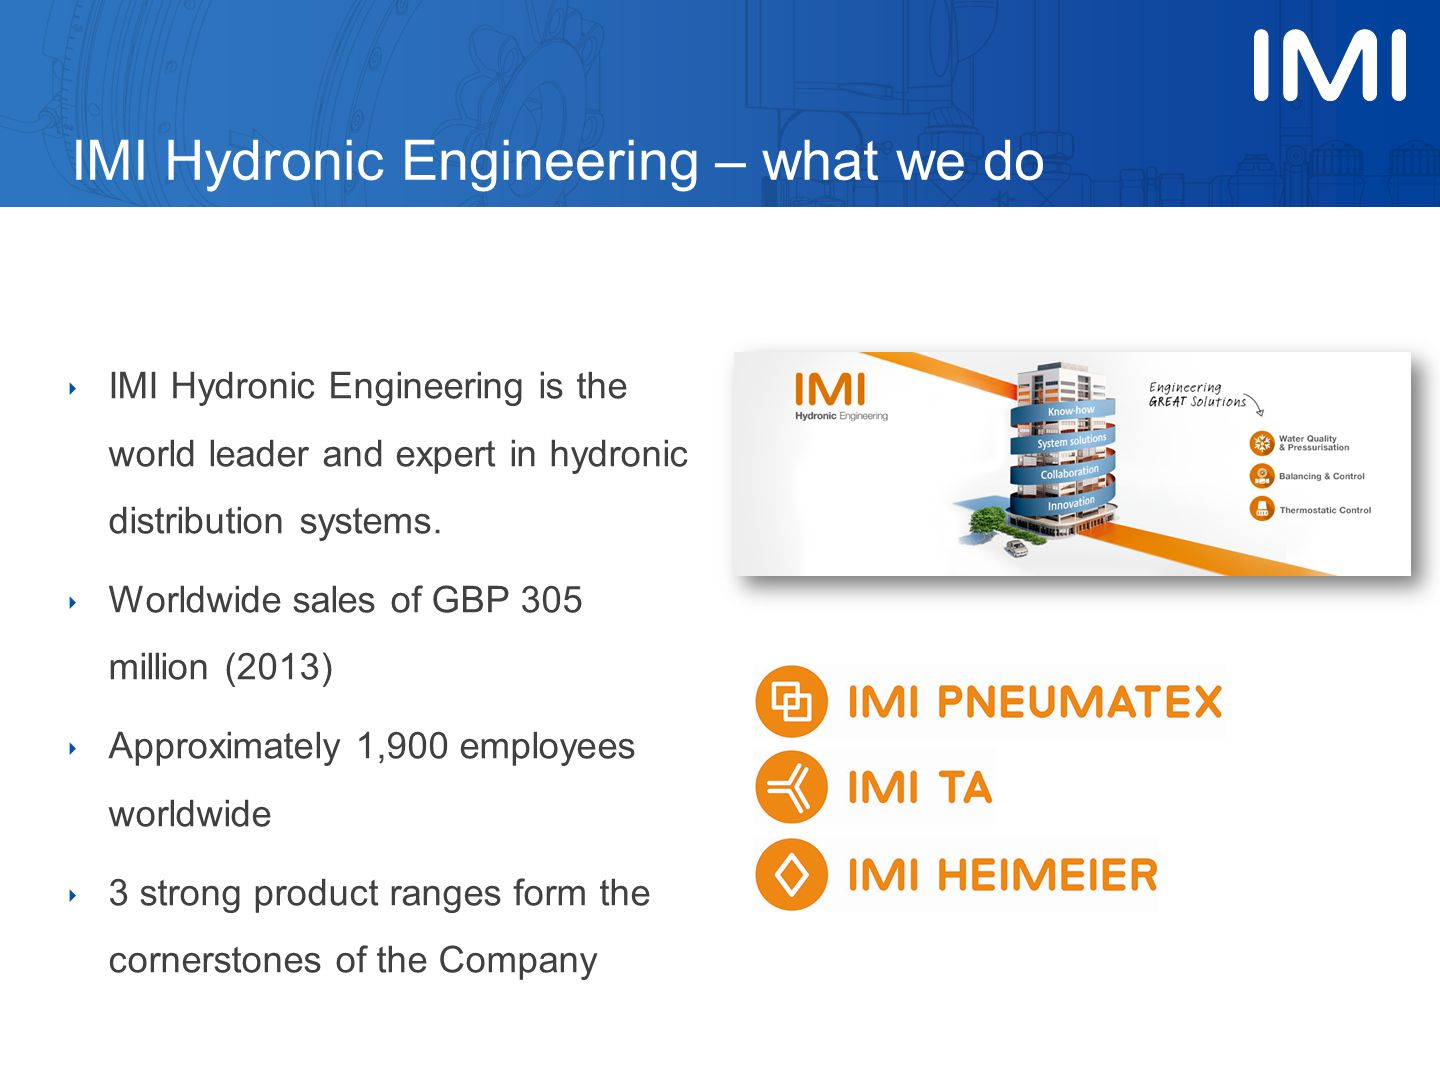 ‣ IMI Hydronic Engineering is the world leader and expert in hydronic distribution systems. ‣ Worldwide sales of GBP 305 million (2013) ‣ Approximatel